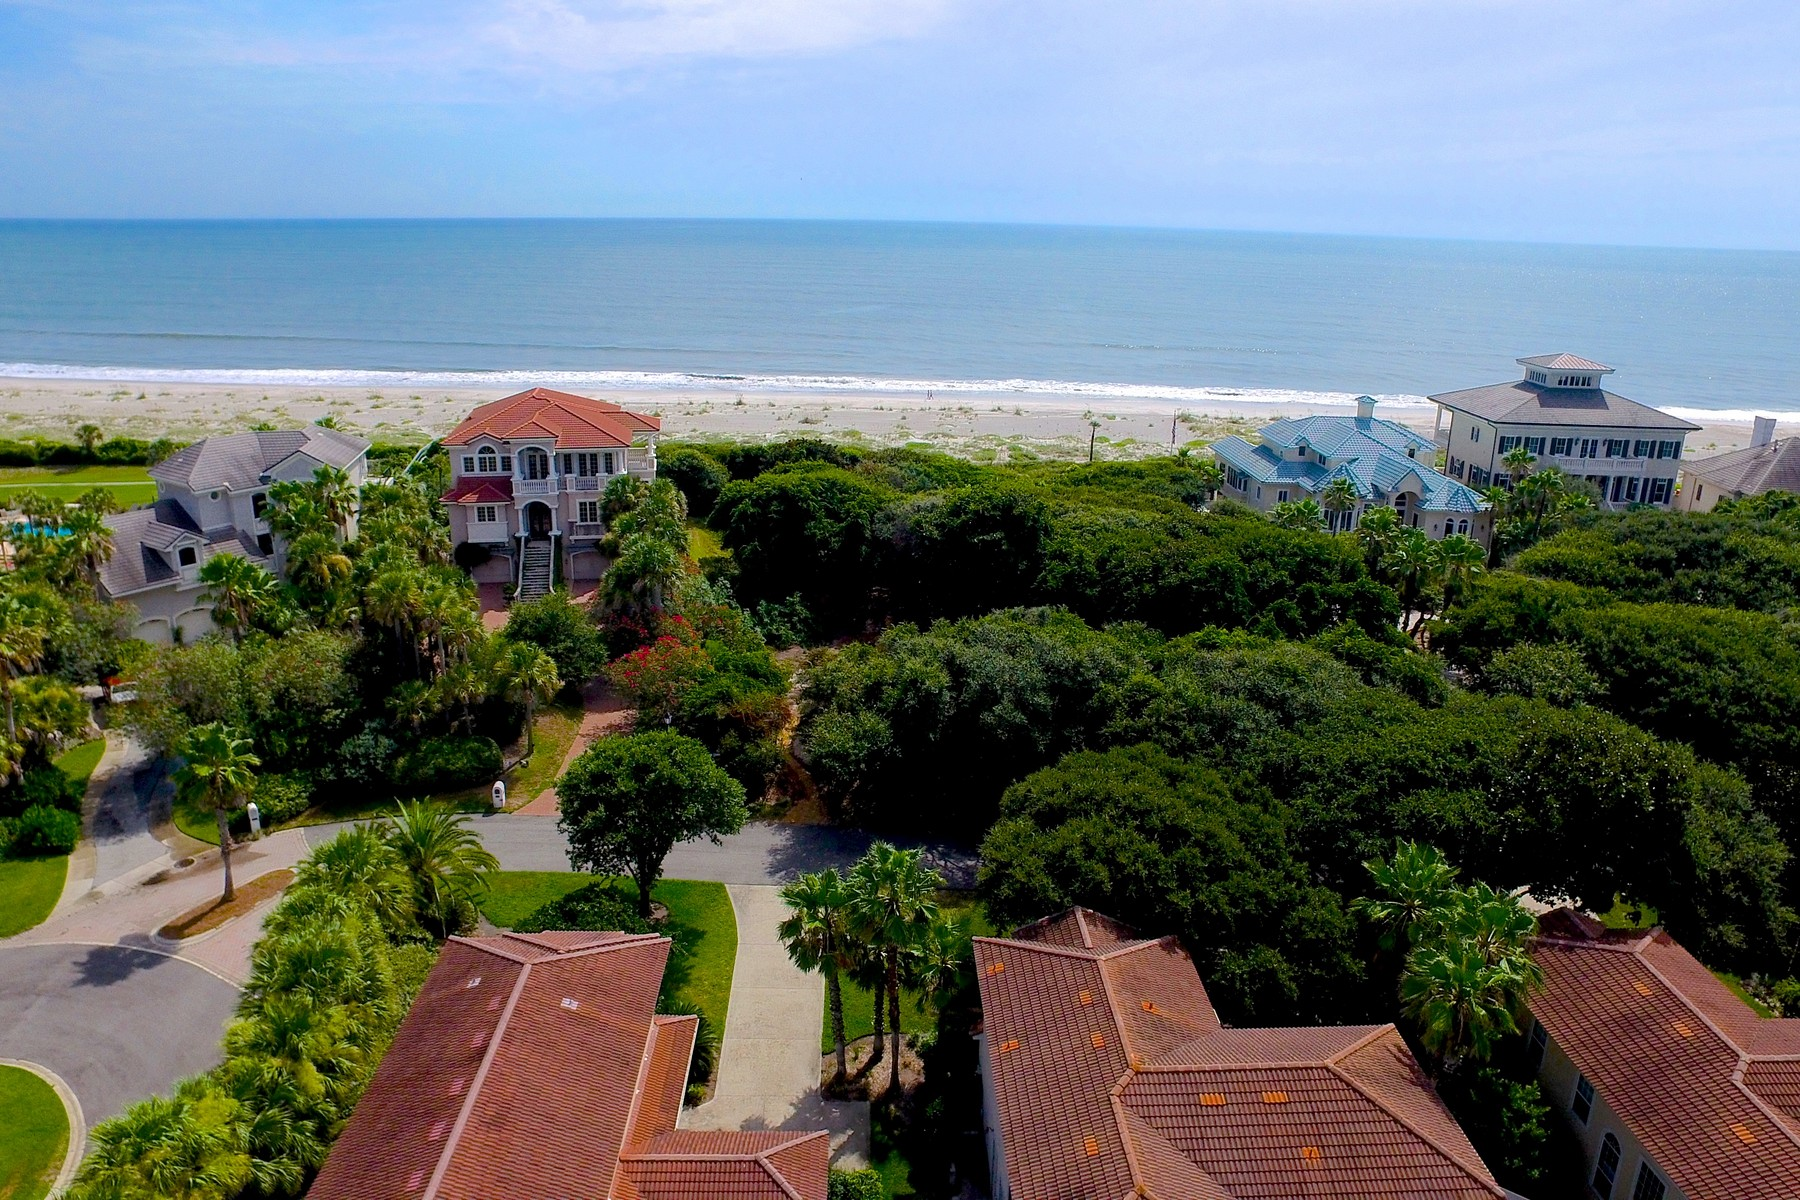 Land for Sale at Residence Ct Lots 10 & 11 Amelia Island, Florida, 32034 United States